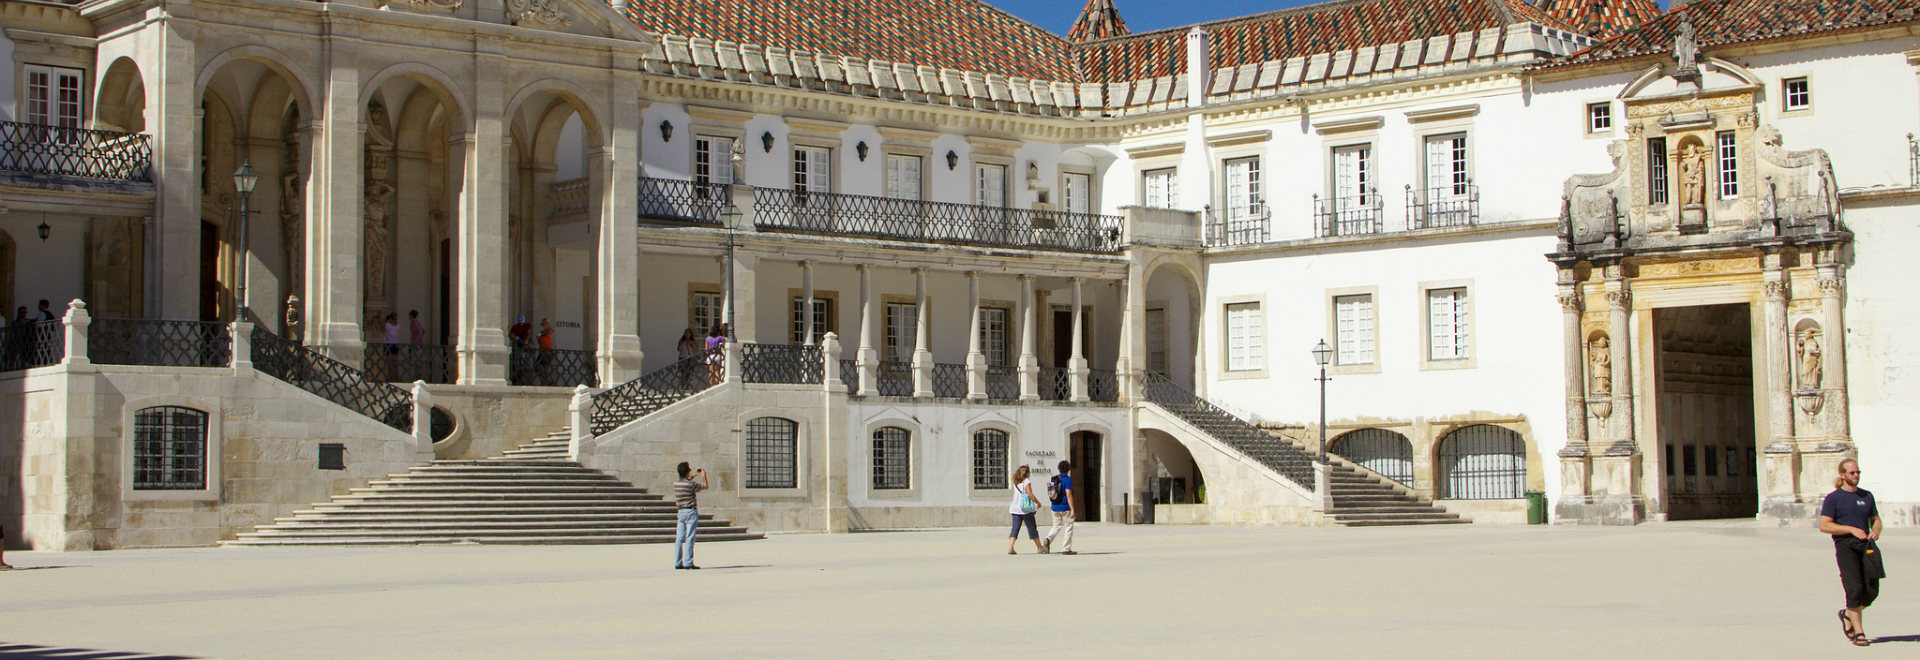 Cities to visit in Portugal